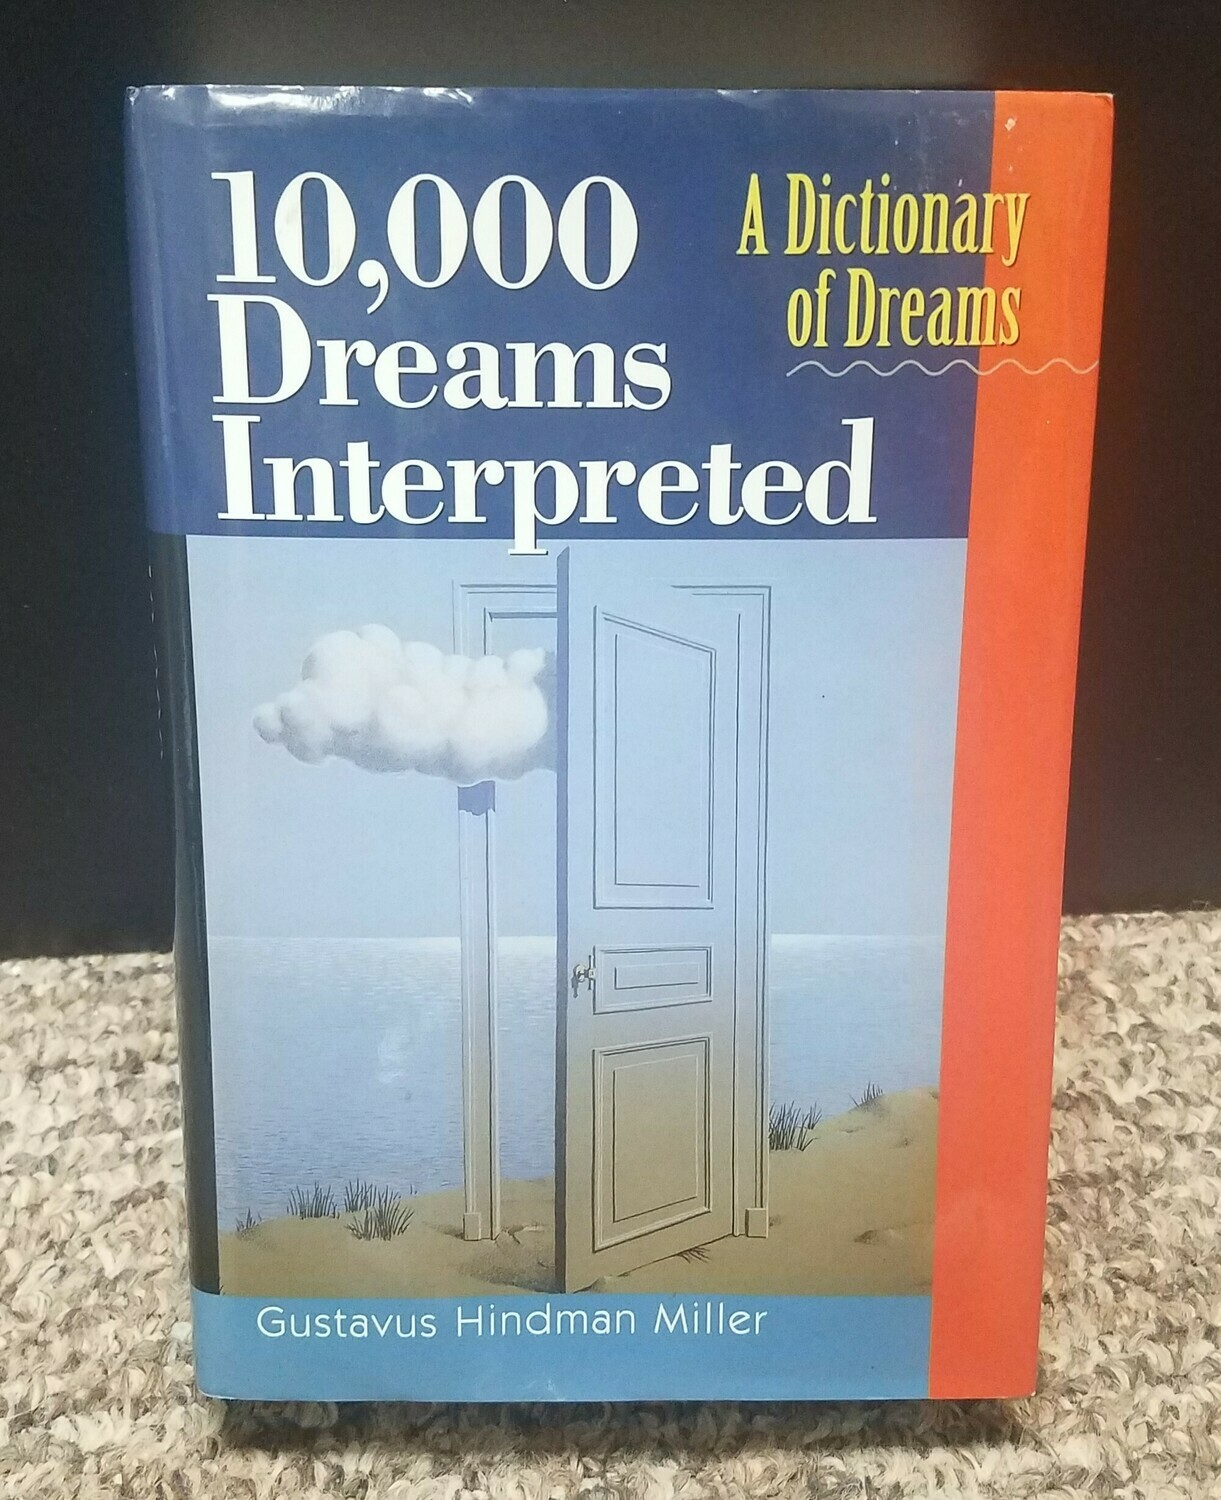 10,000 Dreams Interpreted by Gustavus Hindman Miller